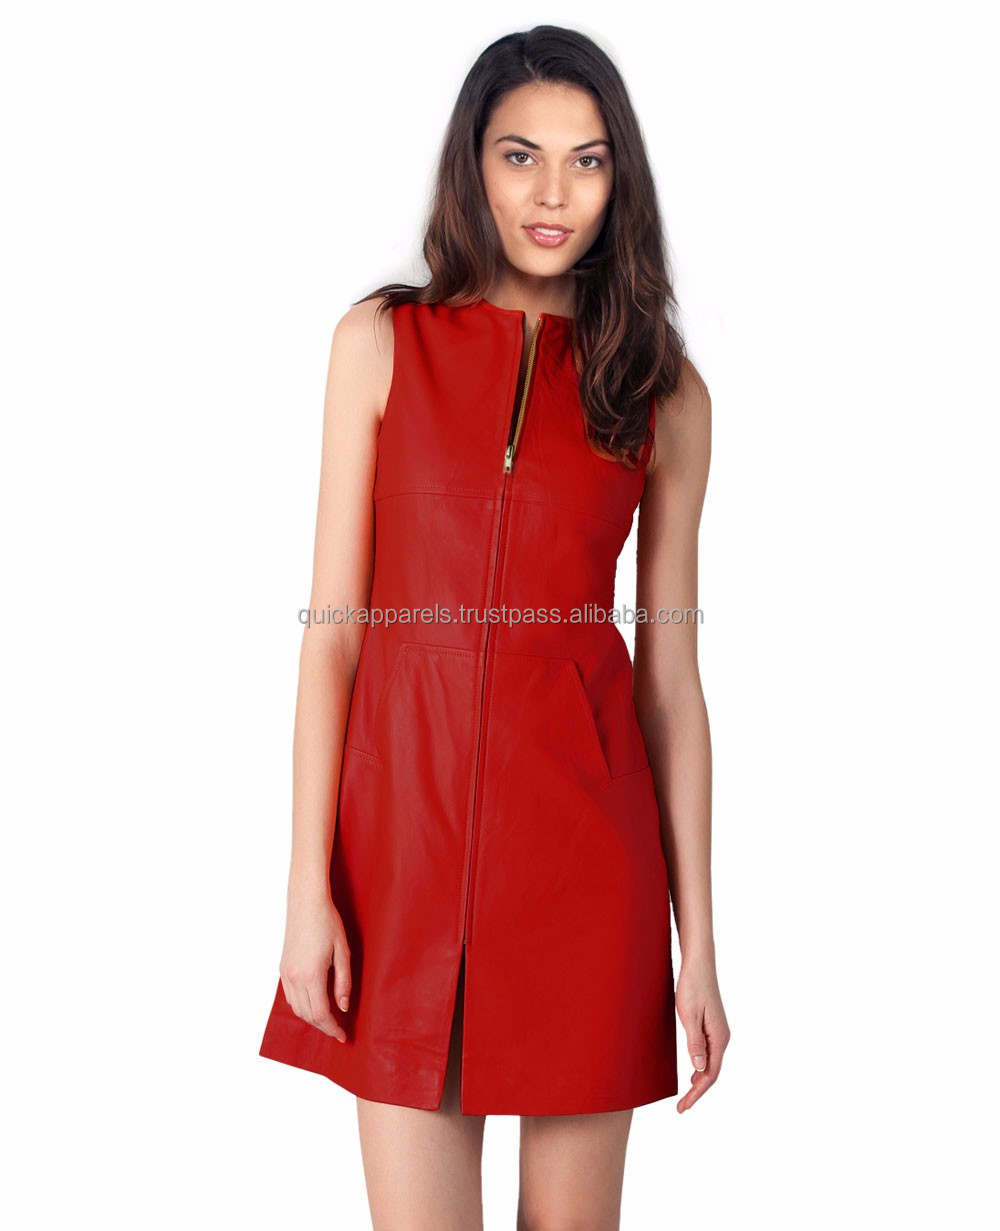 Wholesale new style dresses for woman sex girl leather bondage dress